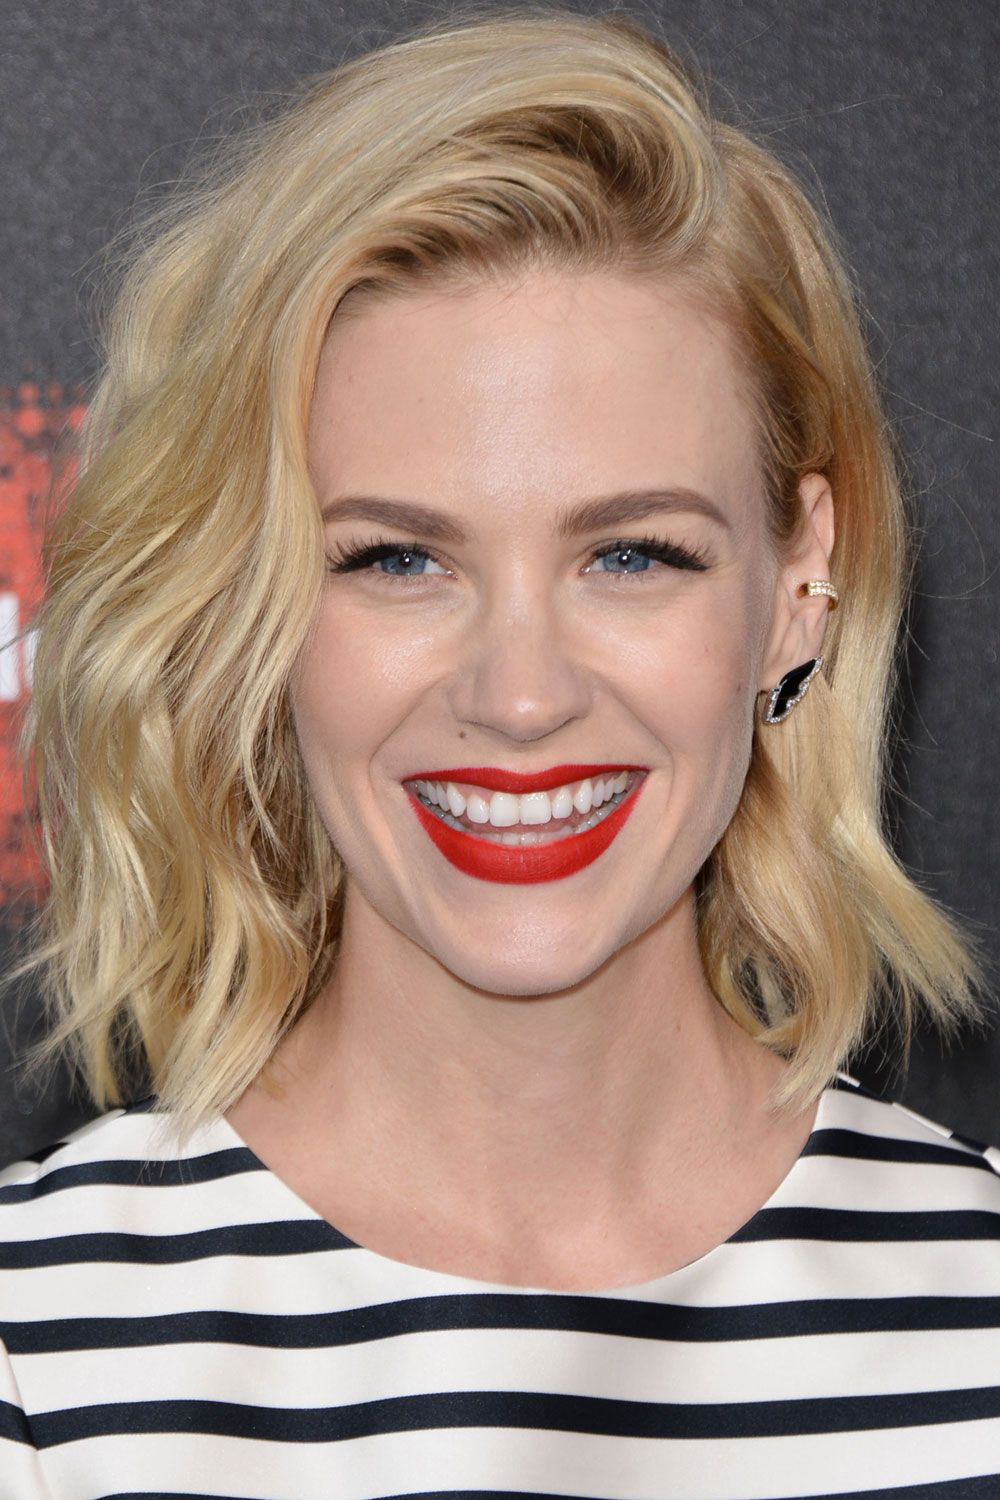 Short Hairstyles Your A List Inspiration January Jones Wavy Bobs